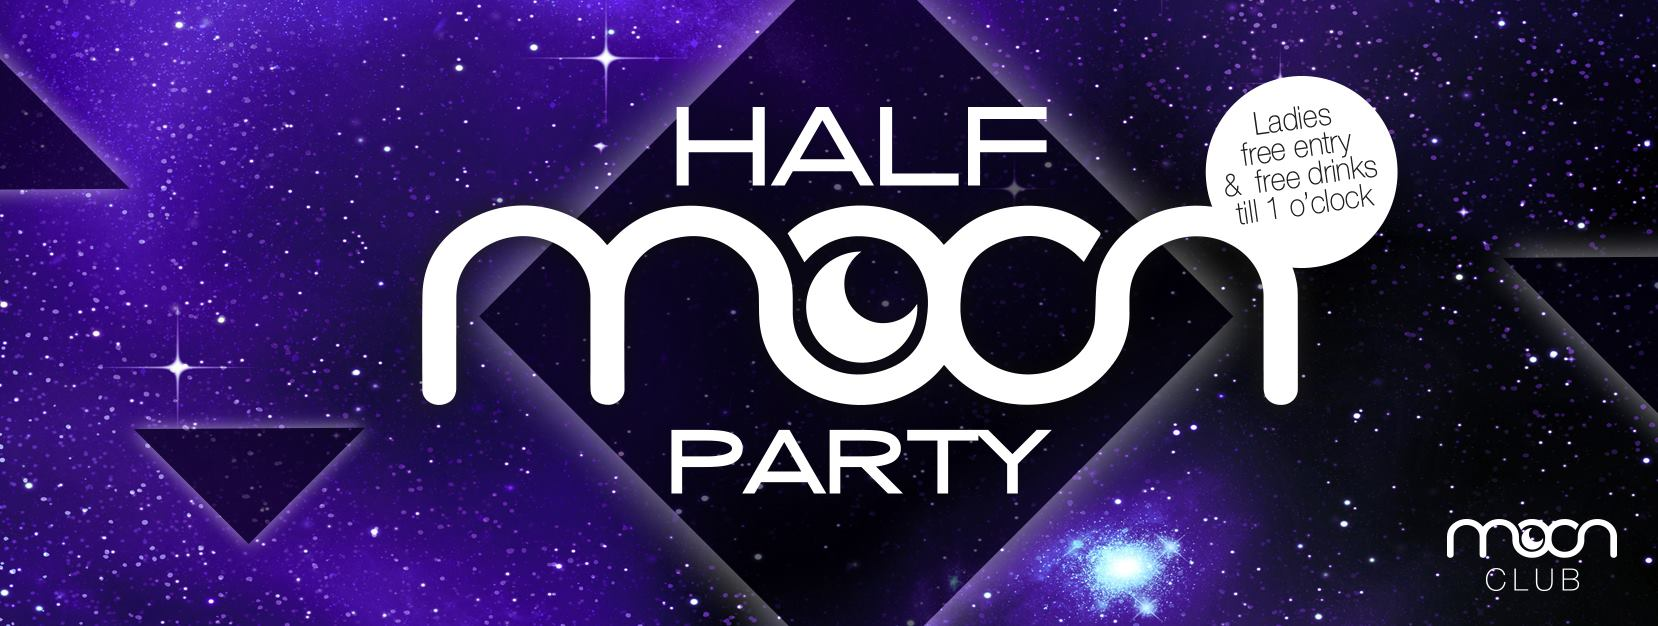 Marcel db live bei der Half Moon Party mit Droplex